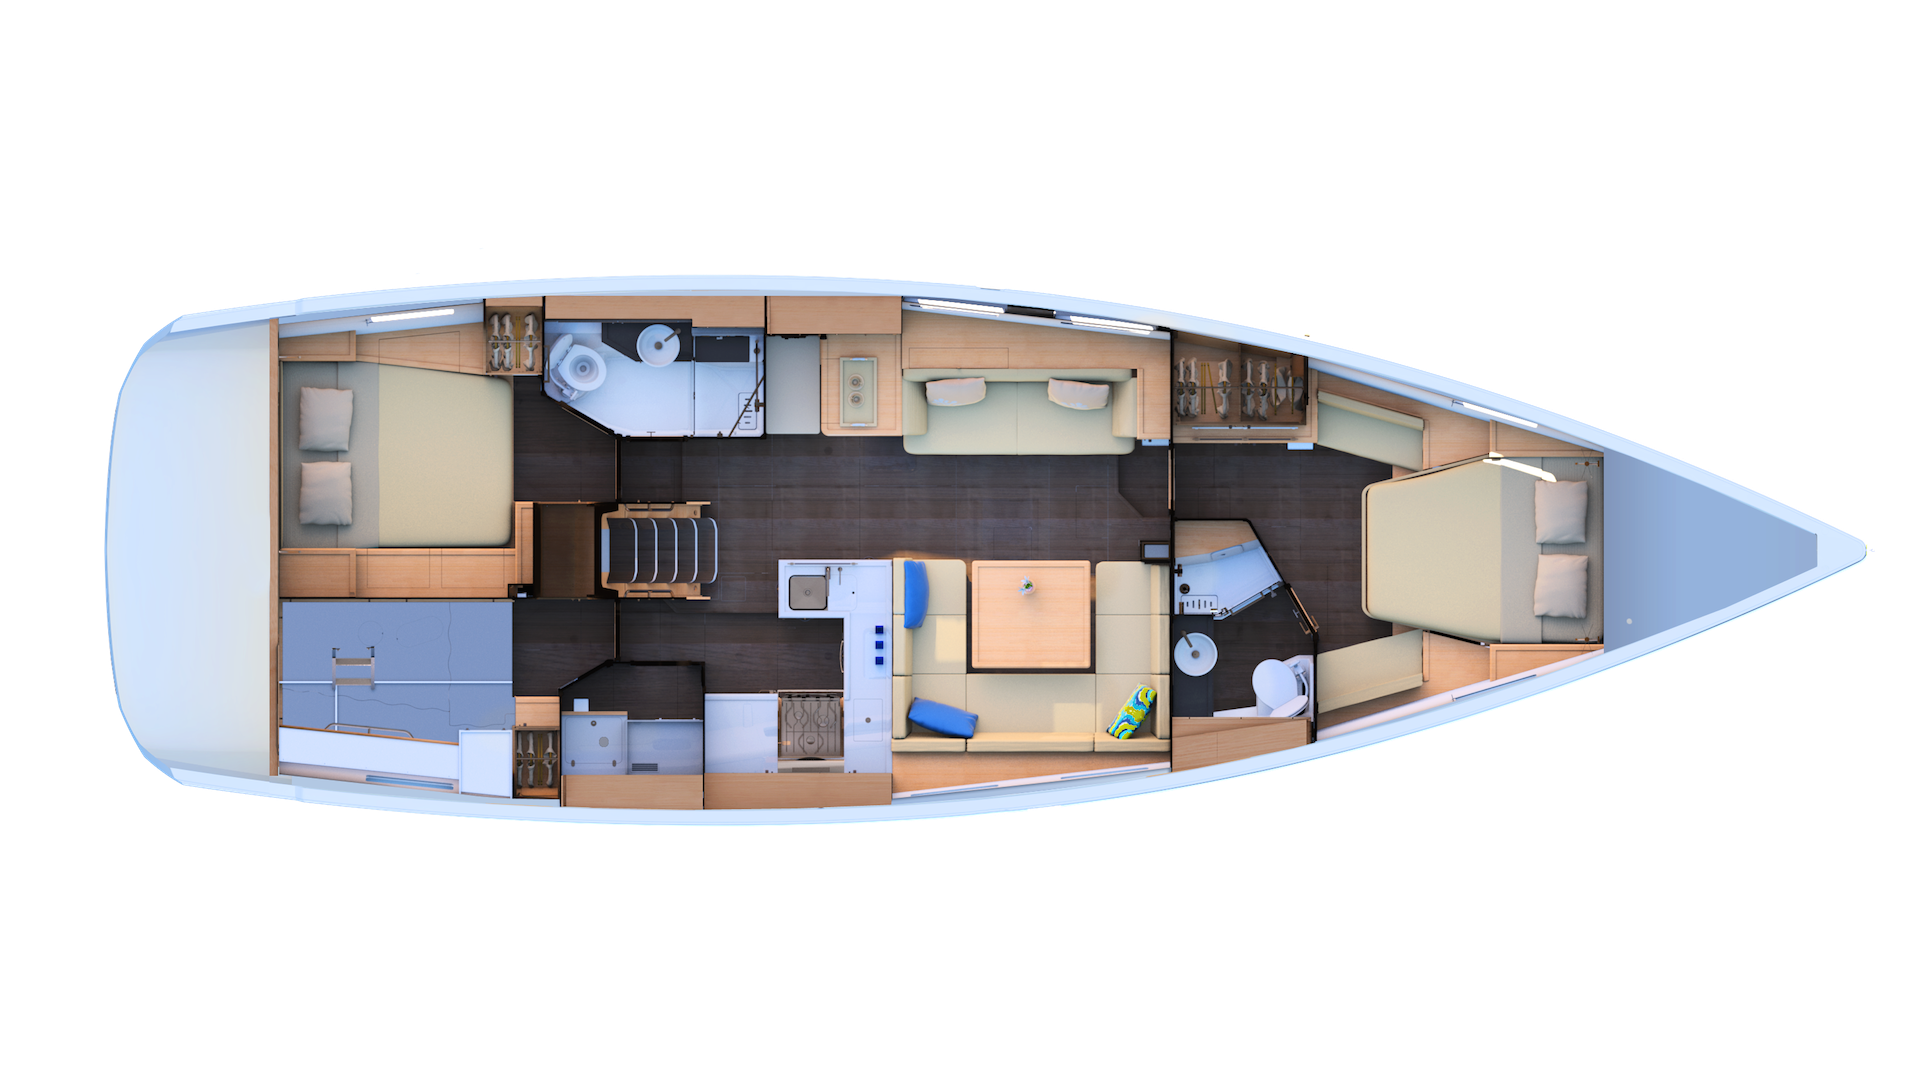 Jeanneau 51 | 2 cabins, Workshop